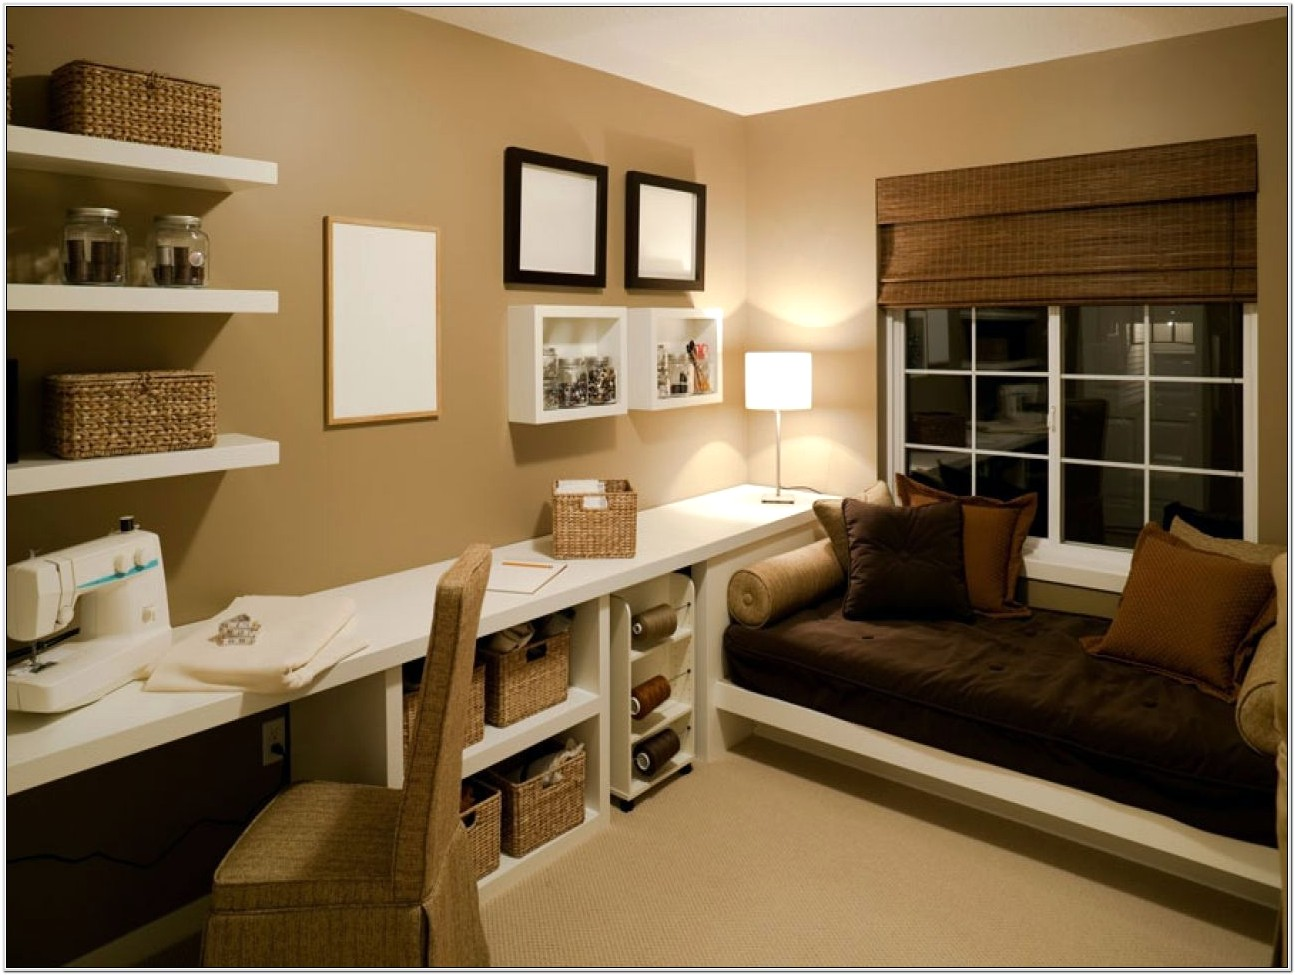 2nd Bedroom Decorating Ideas